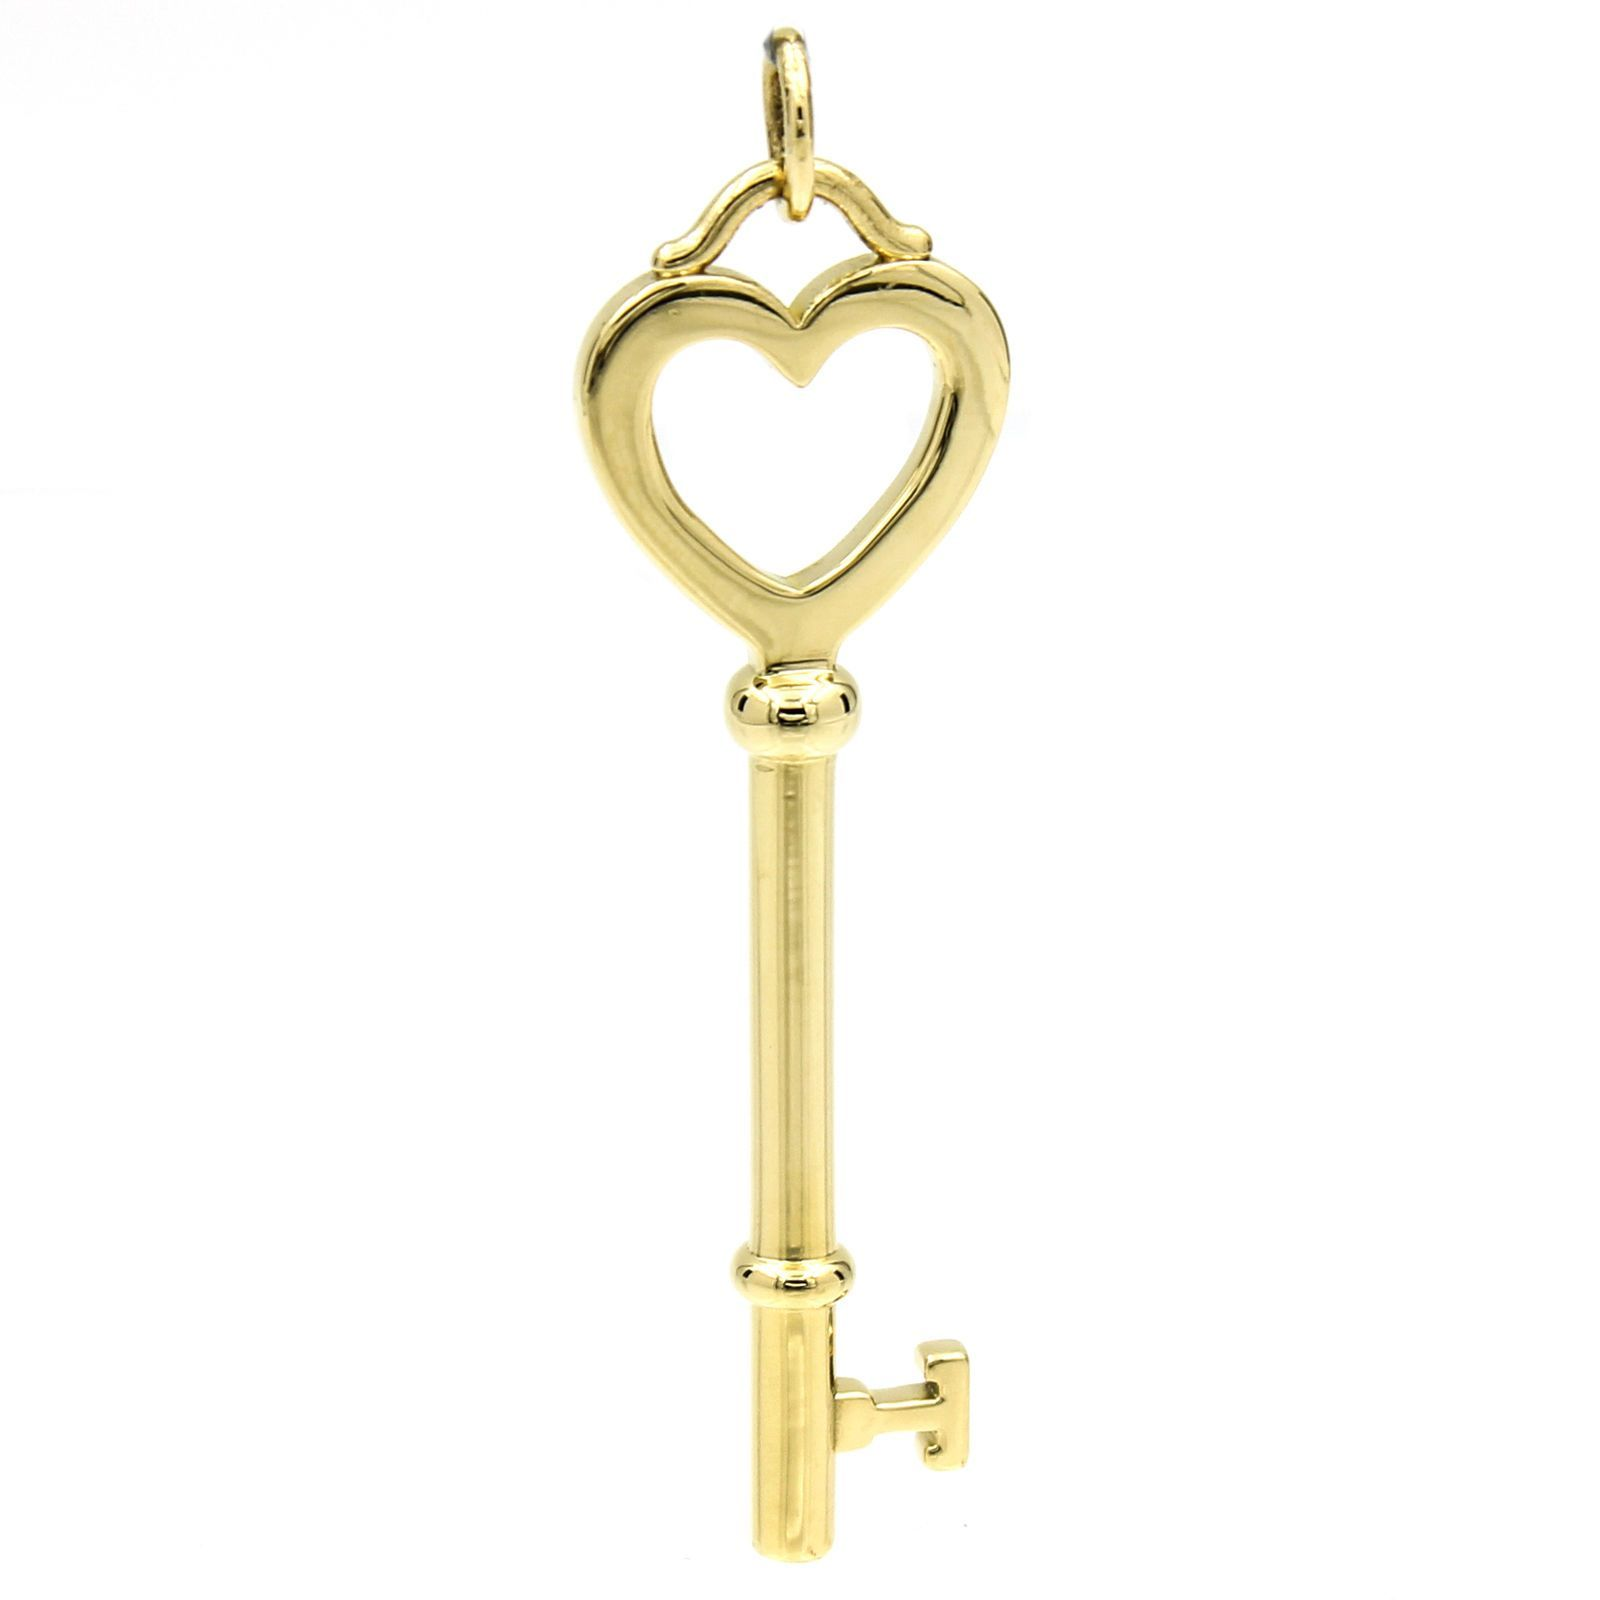 14a2cda24 Tiffany & Co. Large Heart Key Pendant in 18k Yellow Gold 2 ...